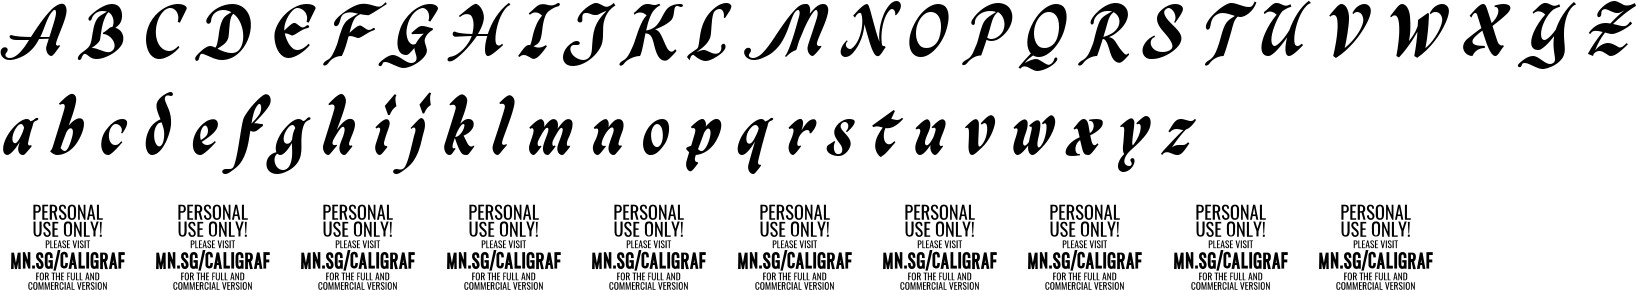 Caligraf Black Personal Use Only Character Map Image